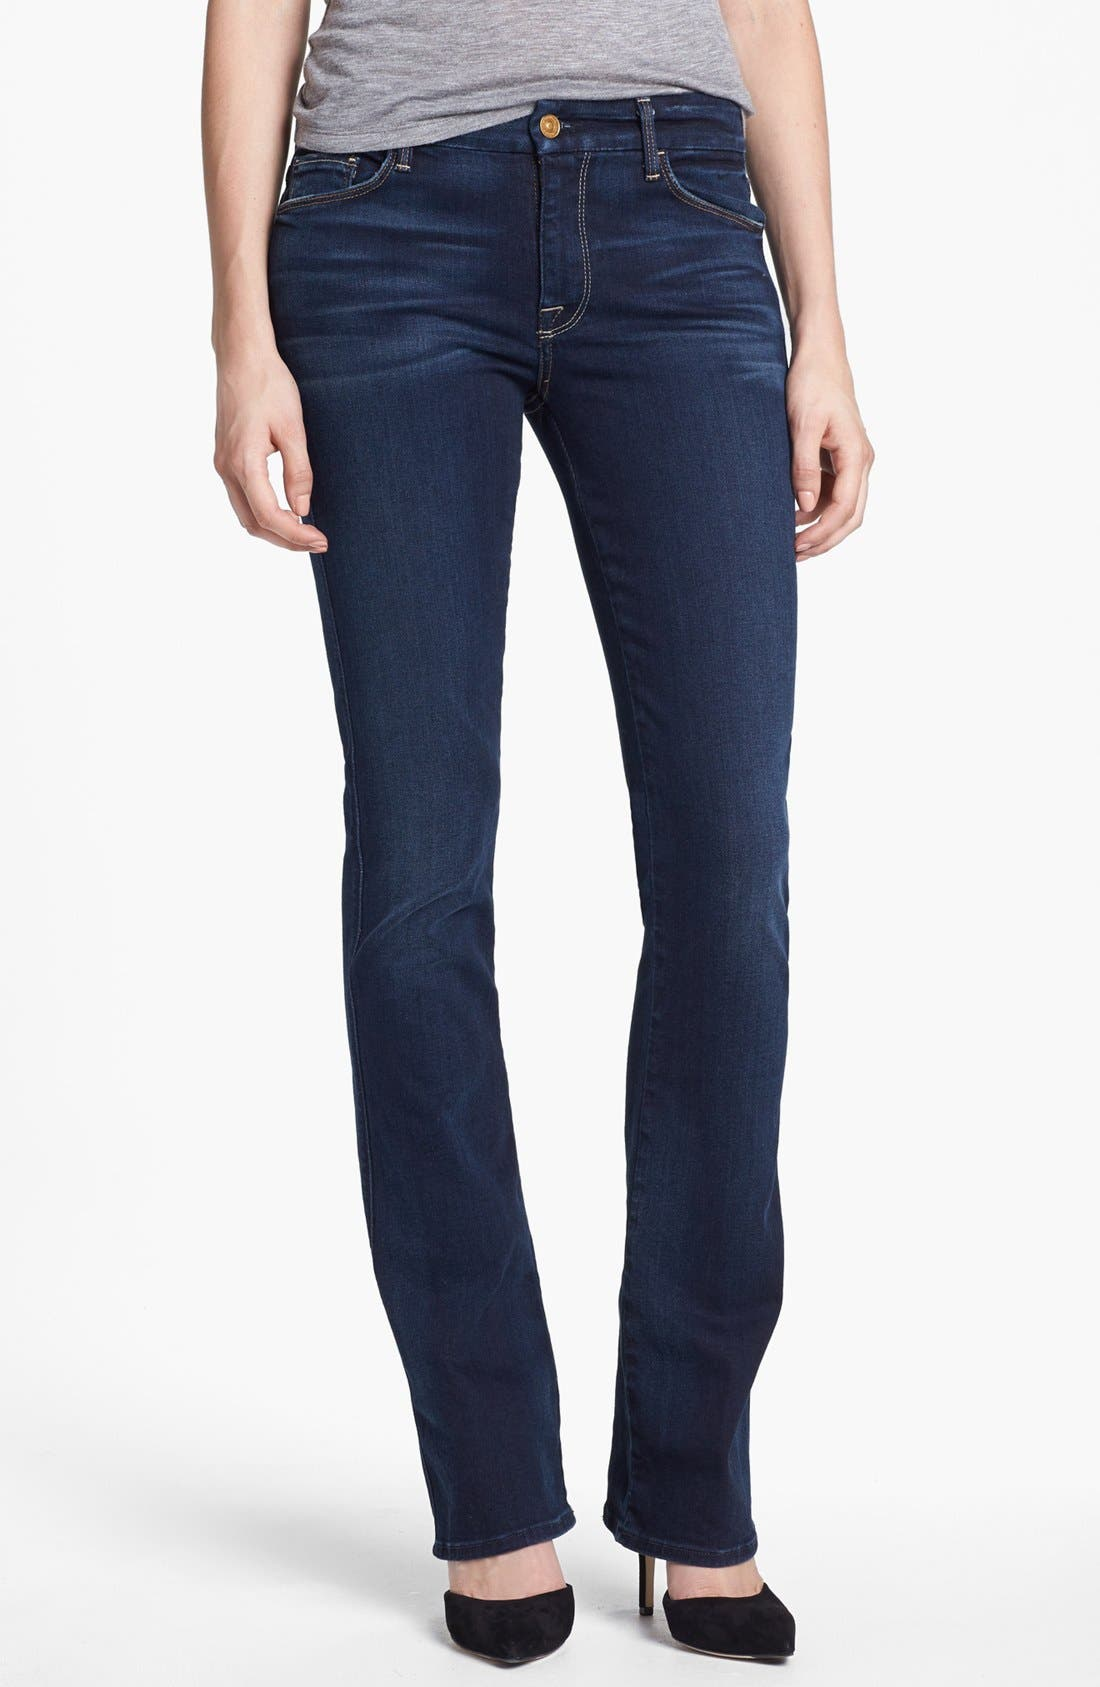 Main Image - 7 For All Mankind® 'The Skinny' Bootcut Jeans (Merci Blue)